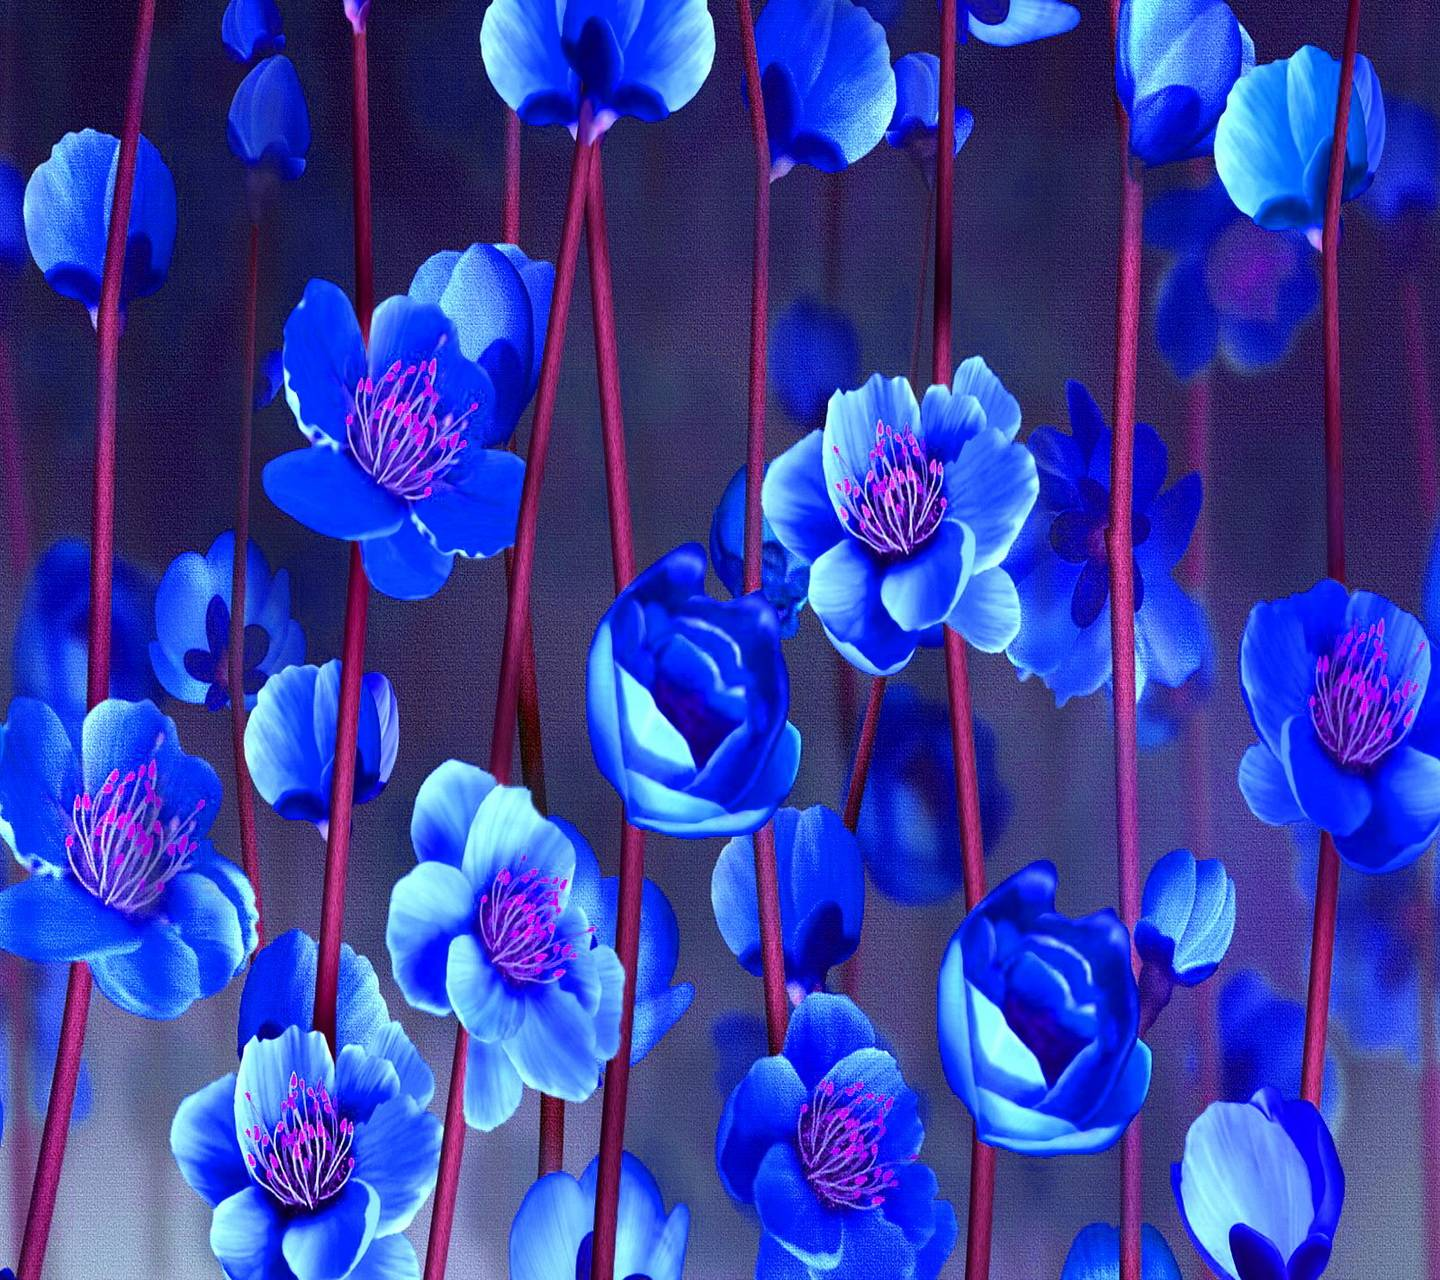 Blue Sakura Flowers